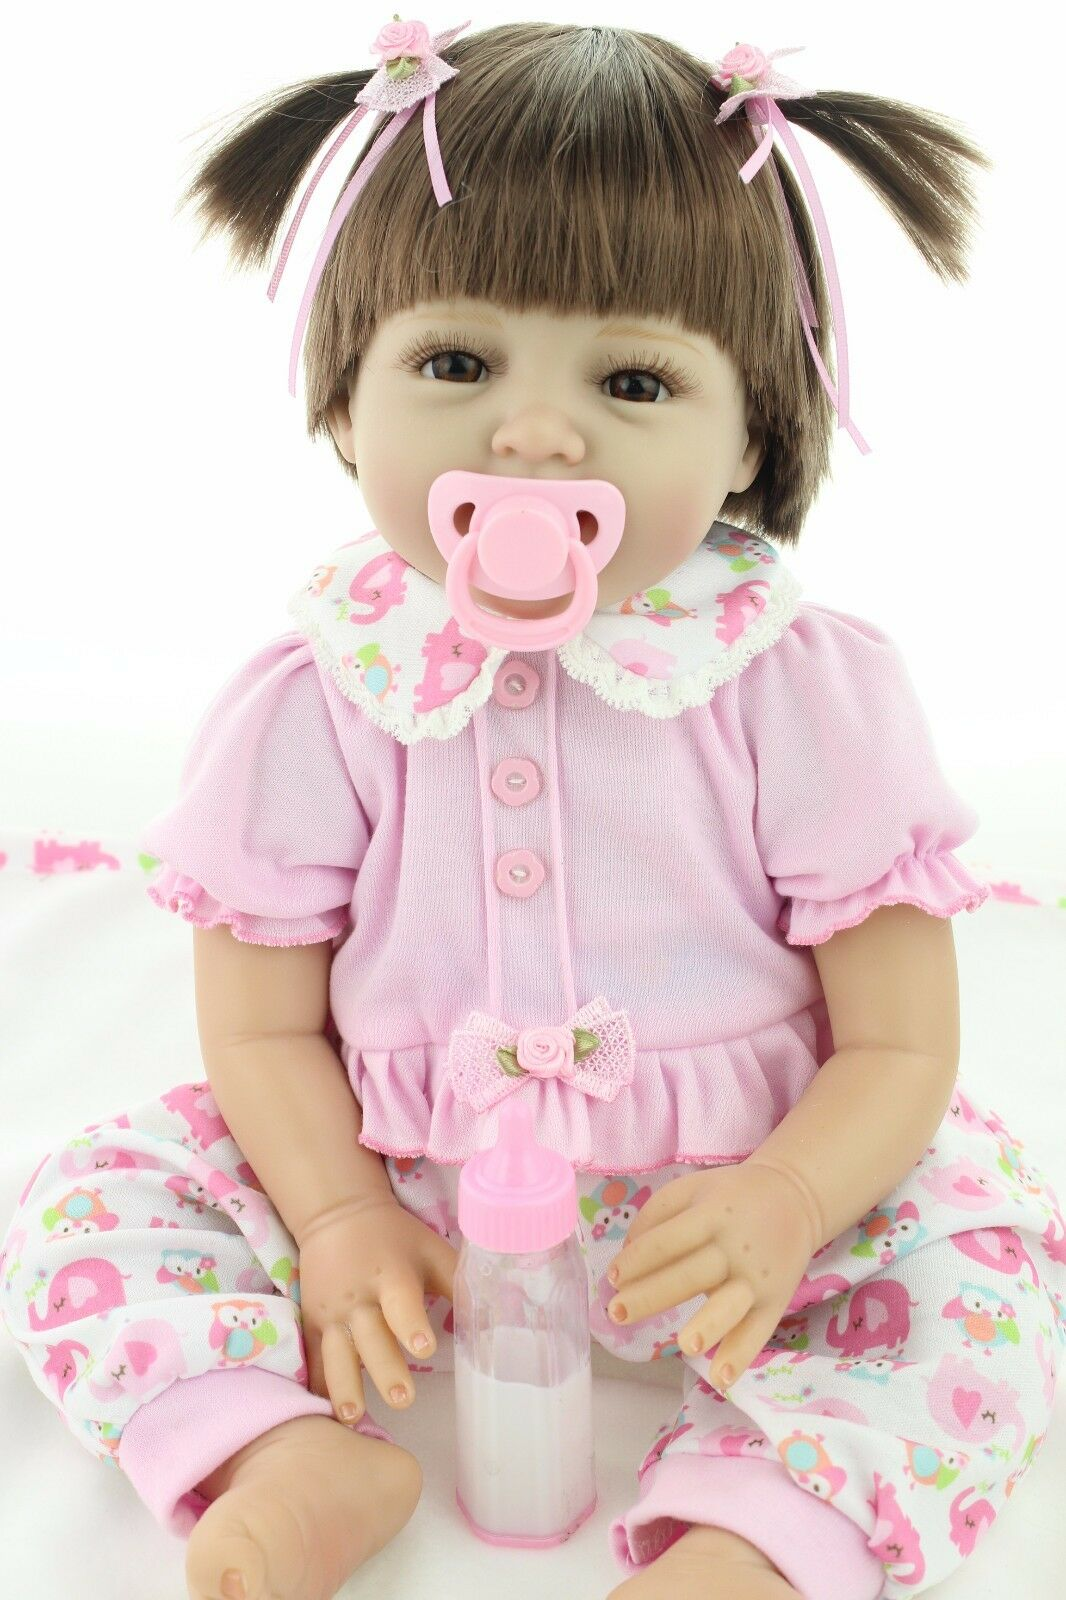 22 Inch Baby Dolls  Soft Silicone Newborn Doll Real Life Like Girl Toddler Rebor